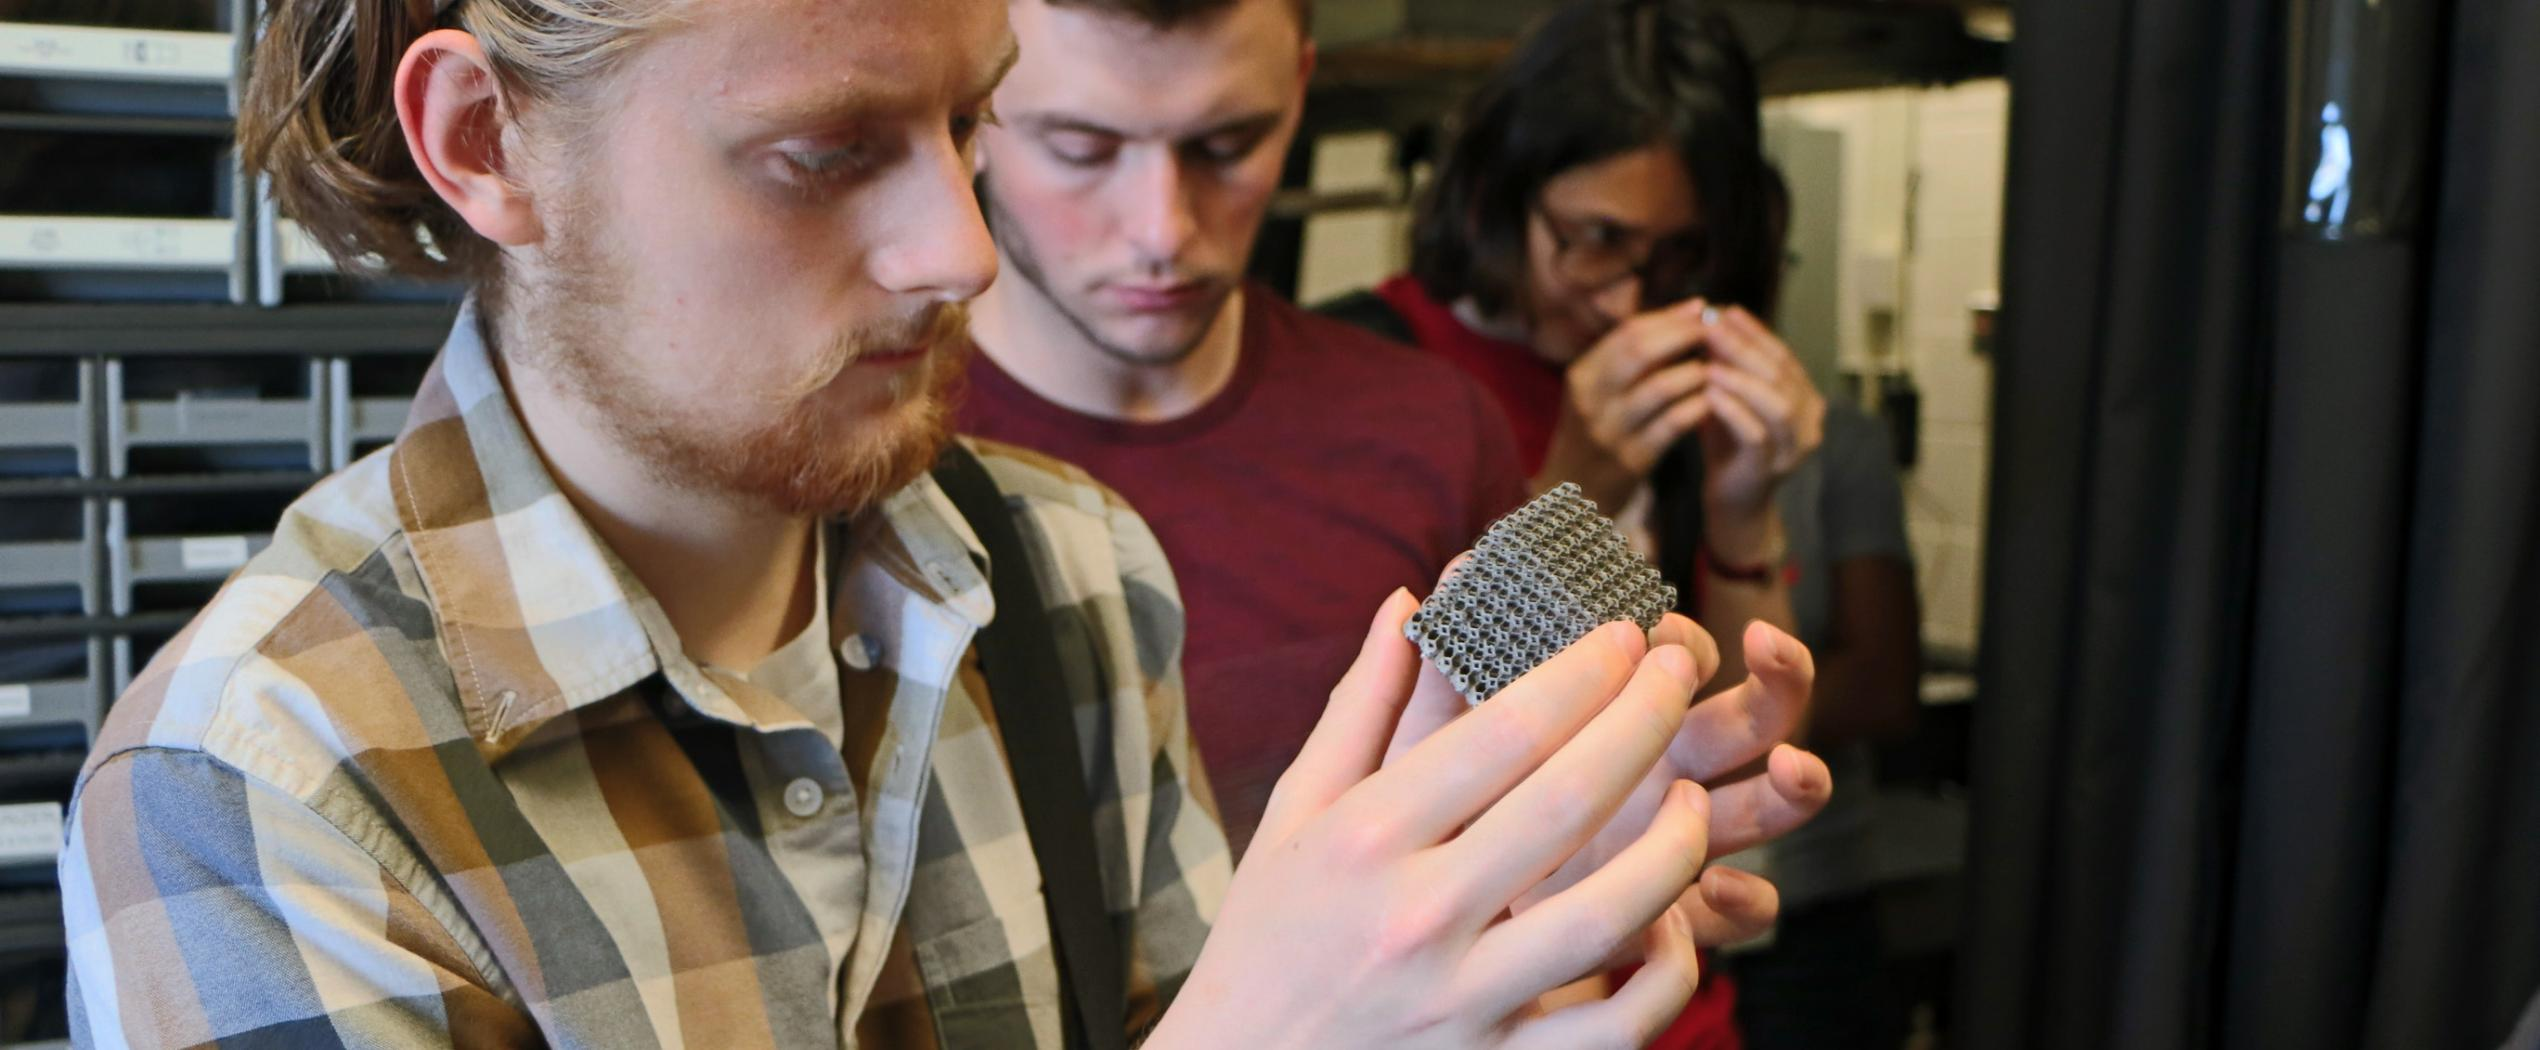 Student examining 3D printed metal structure